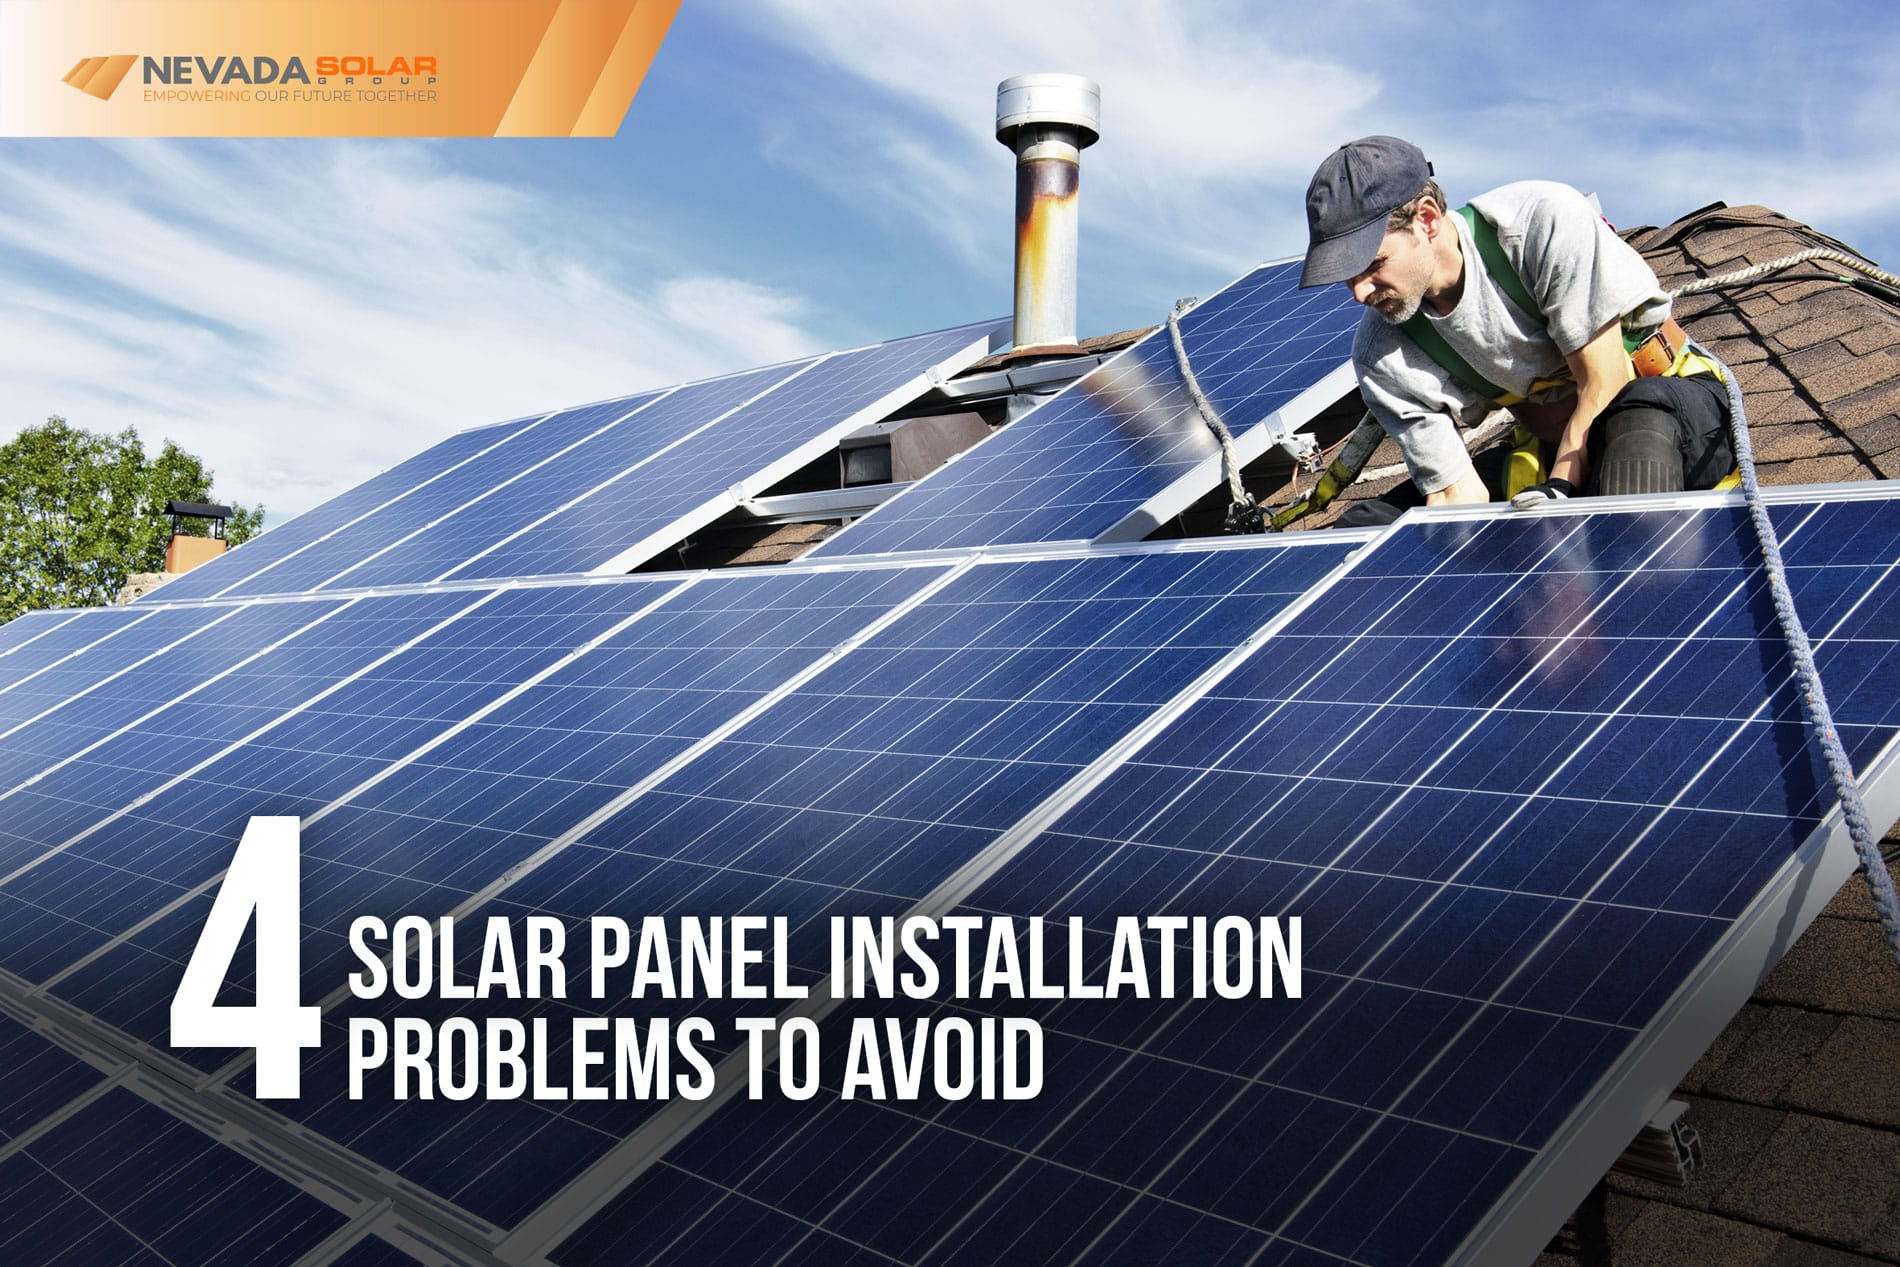 Employee-Who-Is-Installing-Solar-Panels